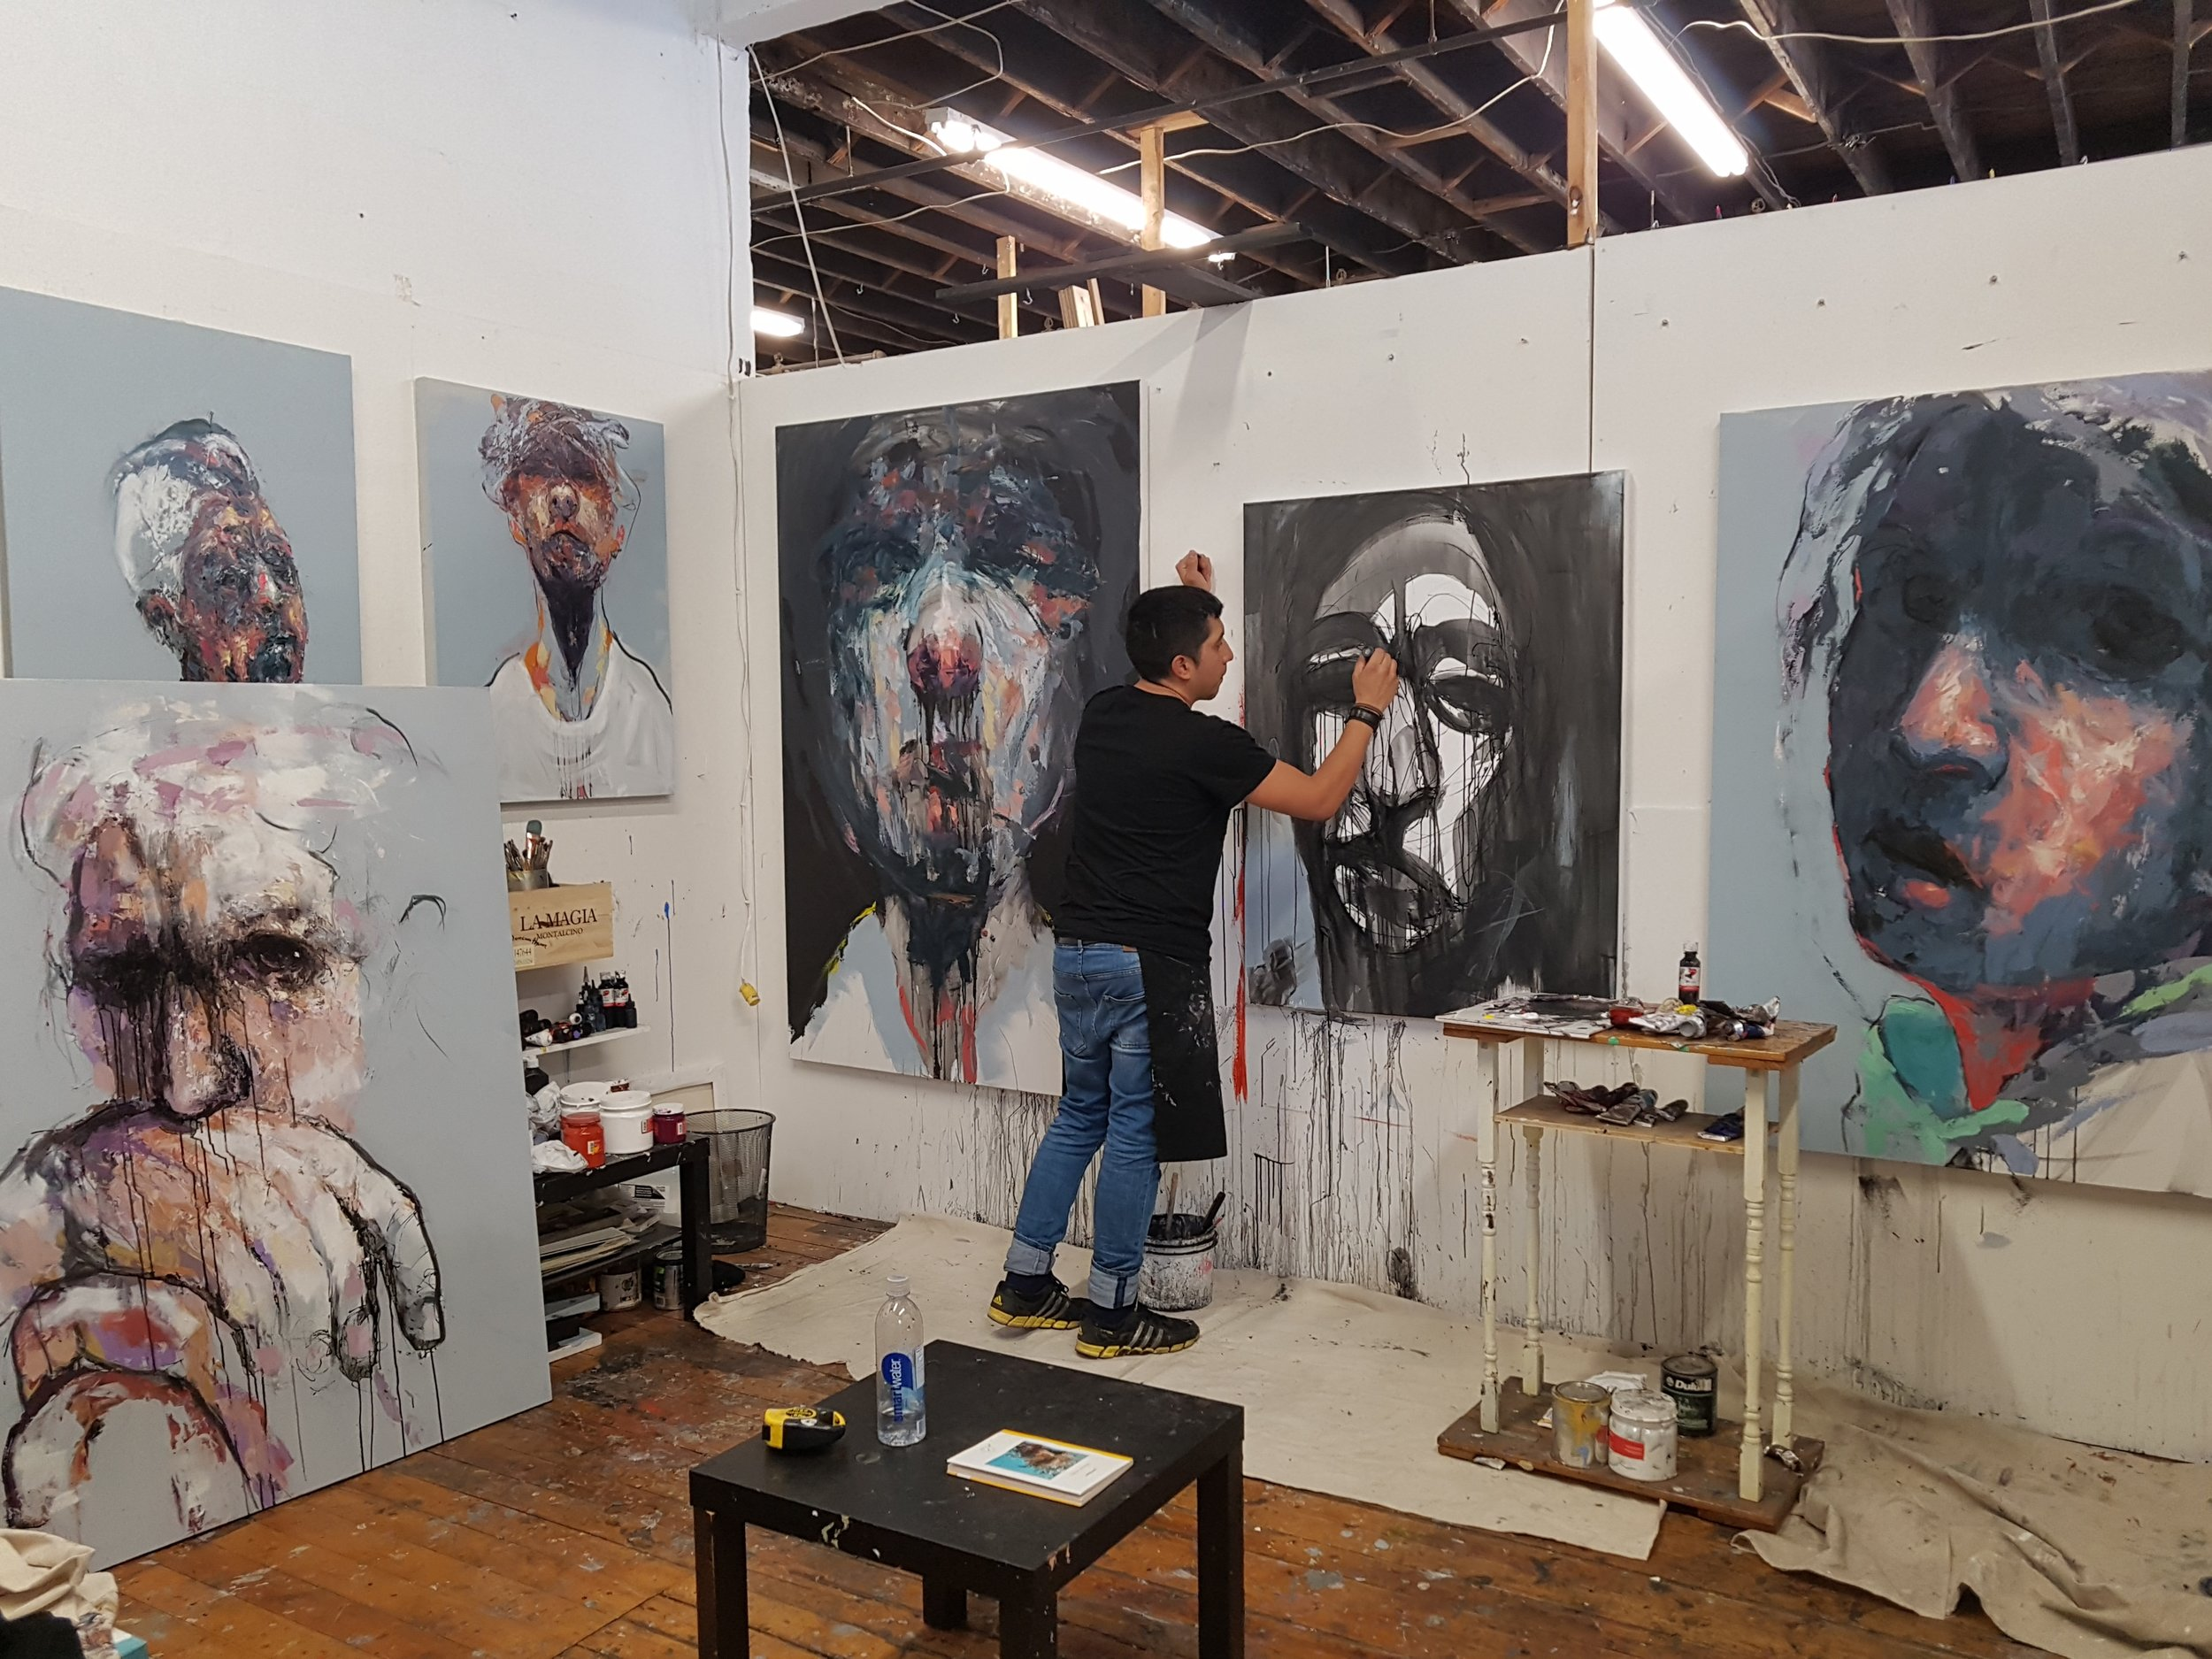 Painting day at my art studio at Walnut Studios in heart of Toronto, Canada.